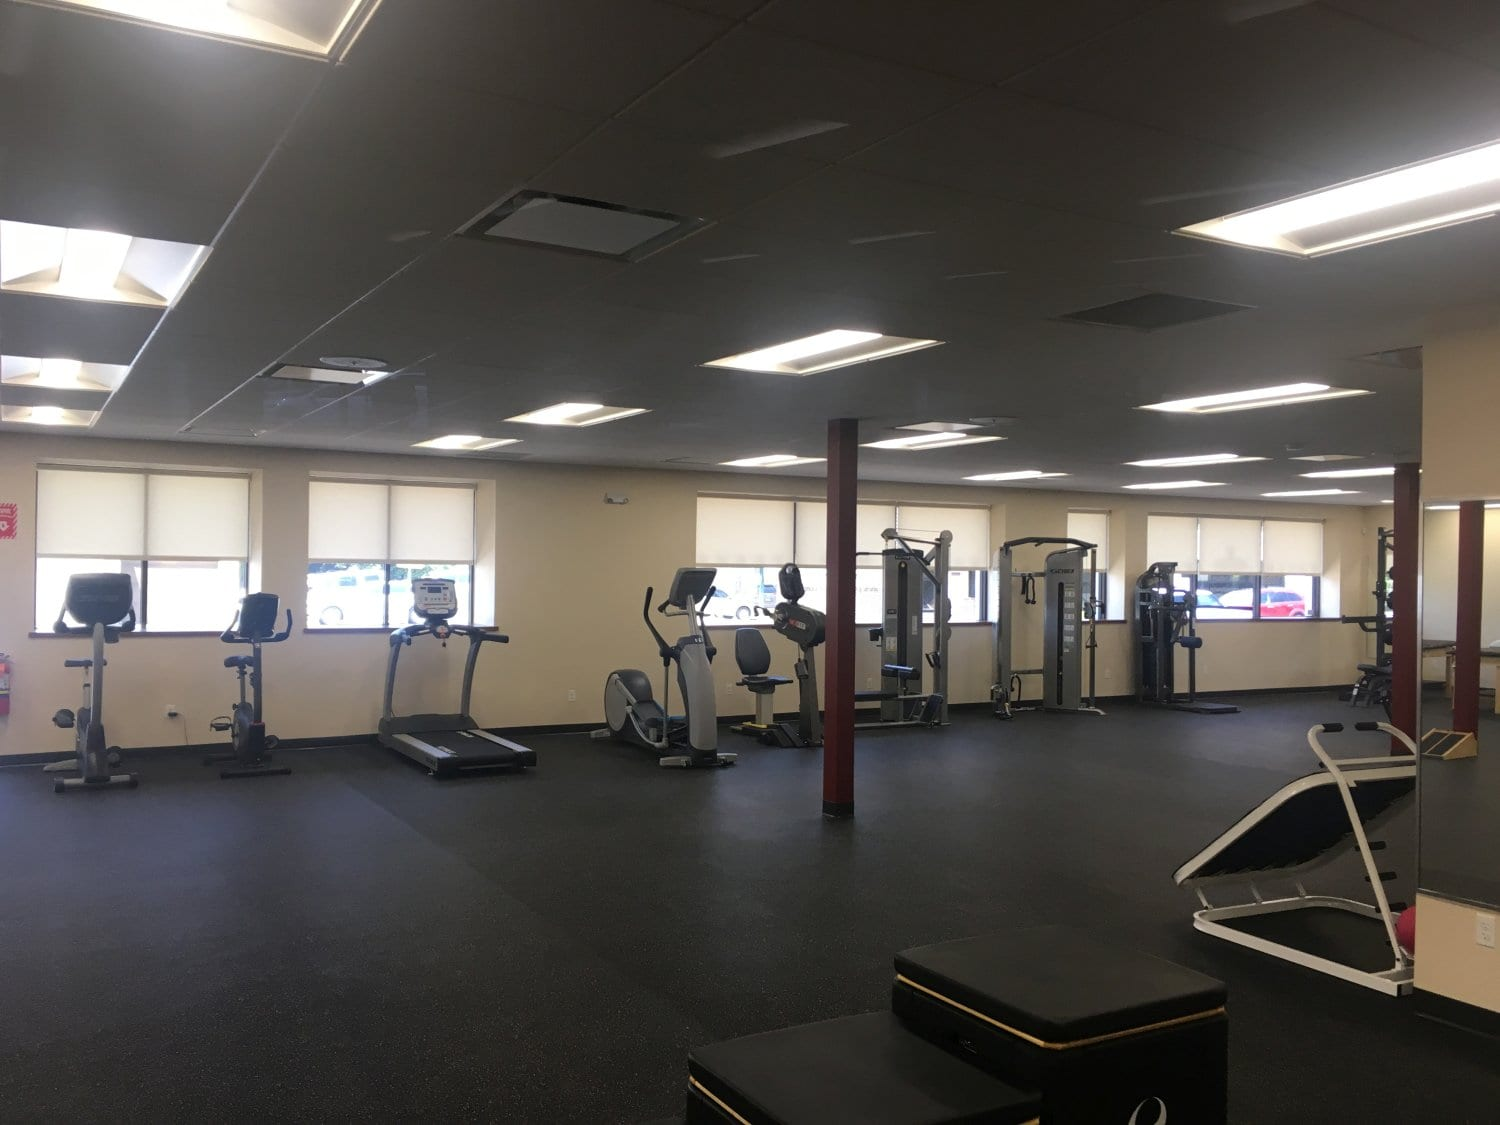 An image of our large training room at our physical therapy clinic in Hewlett, New York. This image shows machines like the elliptical and treadmill which are great for increasing mobility.